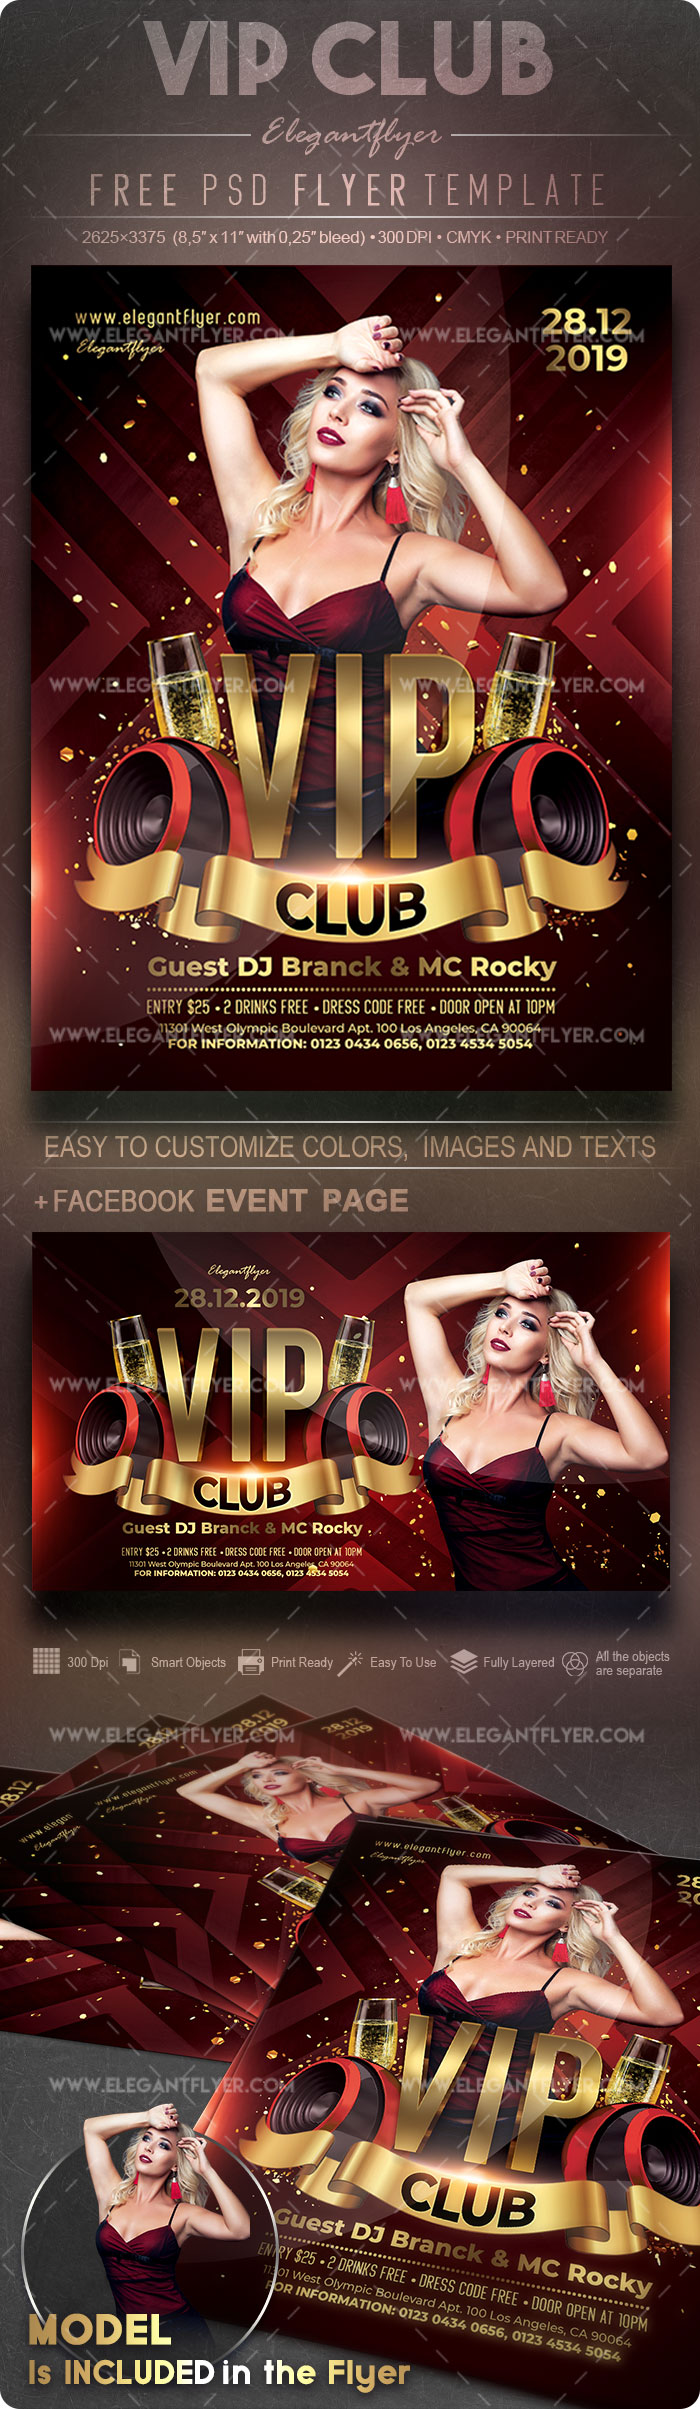 VIP Club – Free Flyer PSD Template